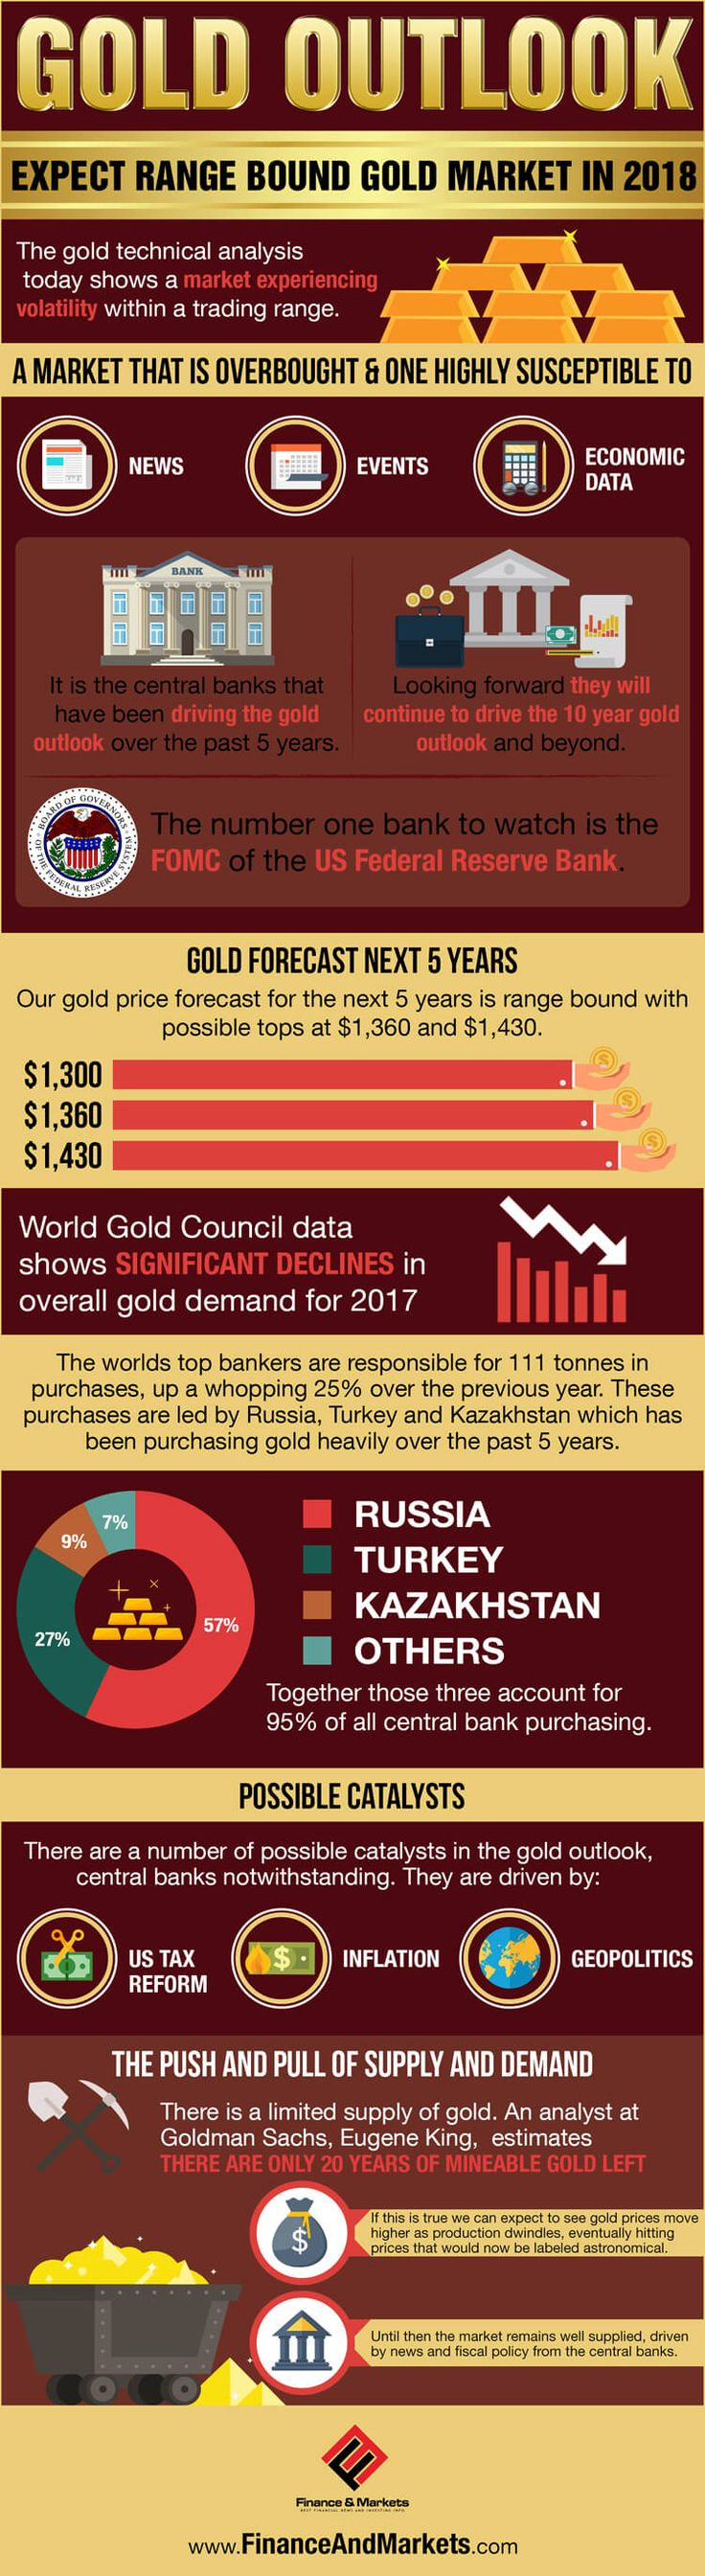 Learn Everything you need to invest in Gold in 5 minutes: Gold forecast next 5 years? Gold prices could come under pressure from improving global economics and the rising tide of cryptocurrency.  The comex gold outlook calls for rising prices over the holiday trading week but we say watch out for resistance at key technical levels. #infographics